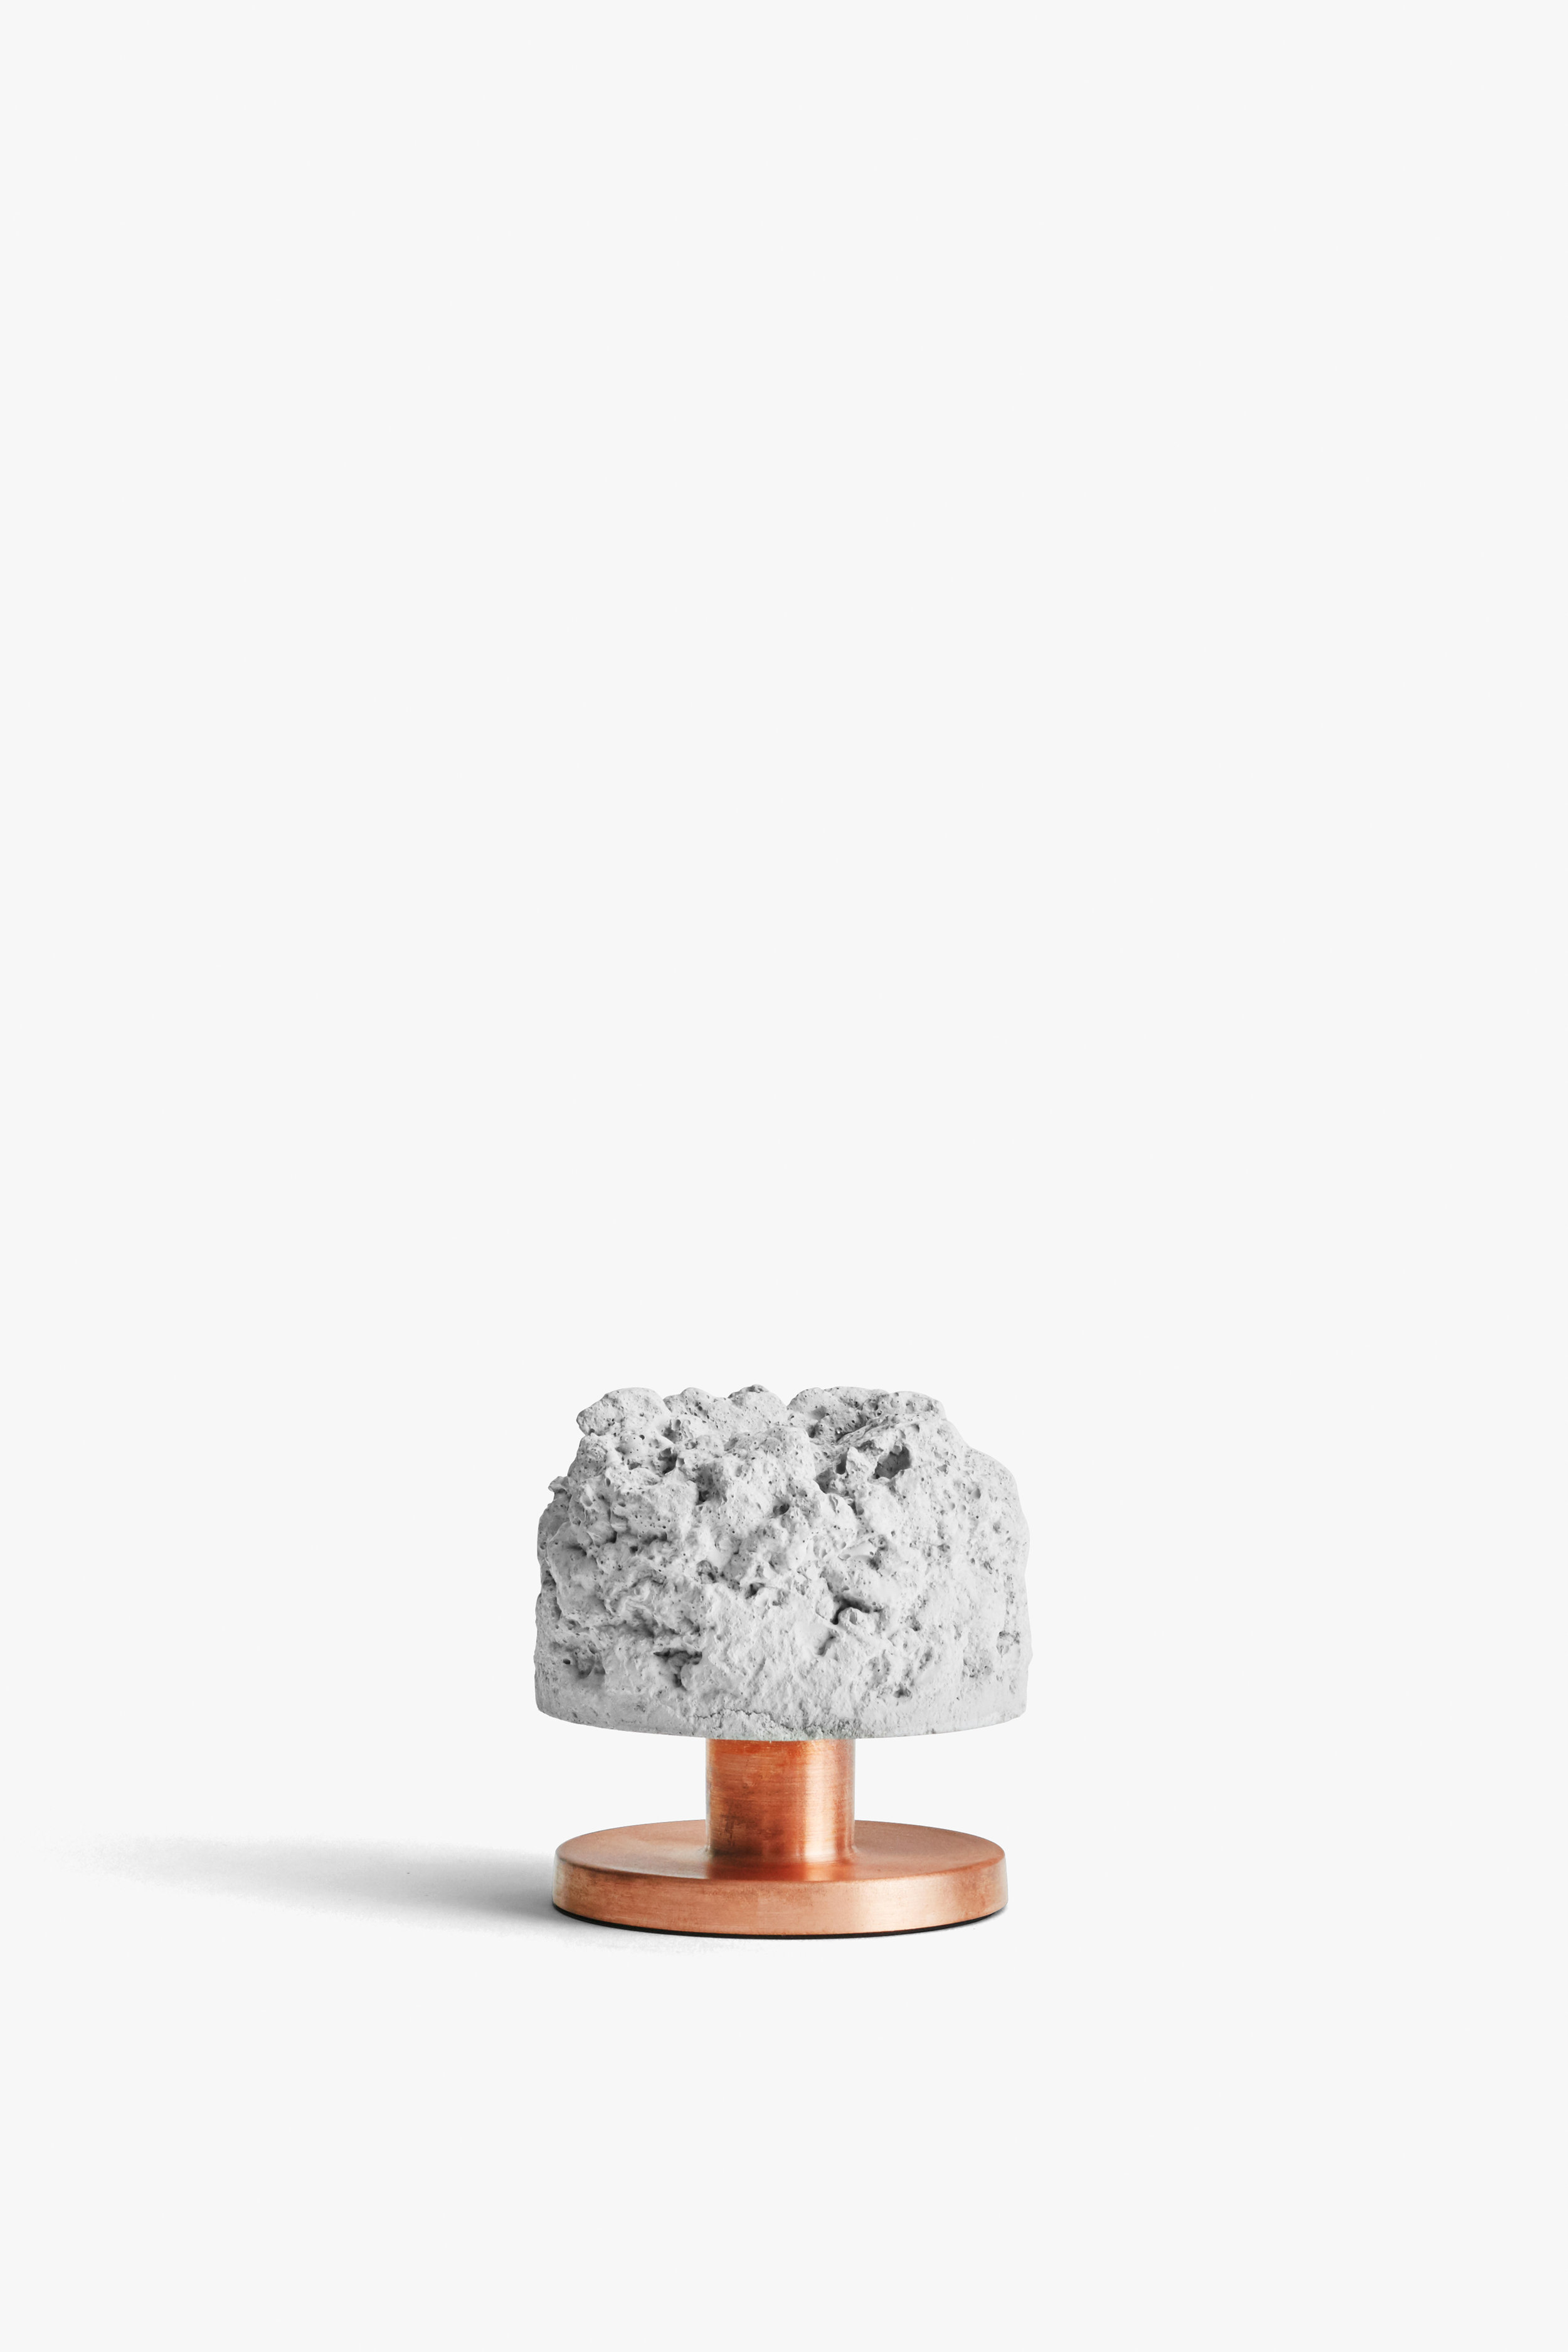 Crowd Candle Holder, Rough Billy Concrete w. Copper Base, New Works, High Res.jpg